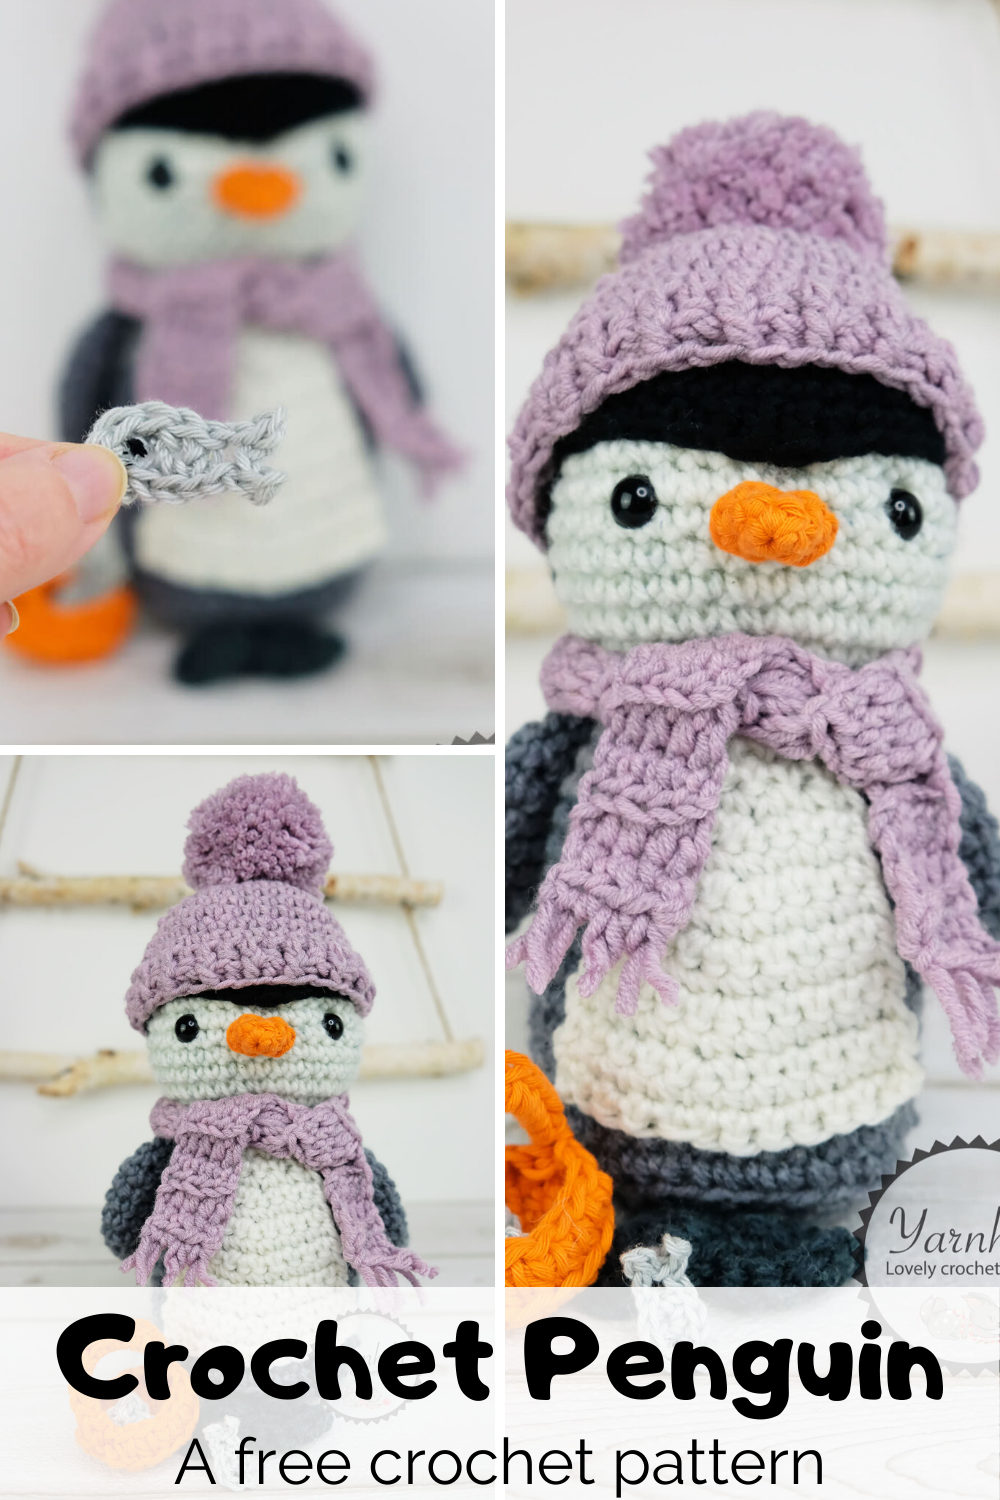 Crochet an amgurumi penguin - Easy and cute crochet penguin pattern | 1500x1000